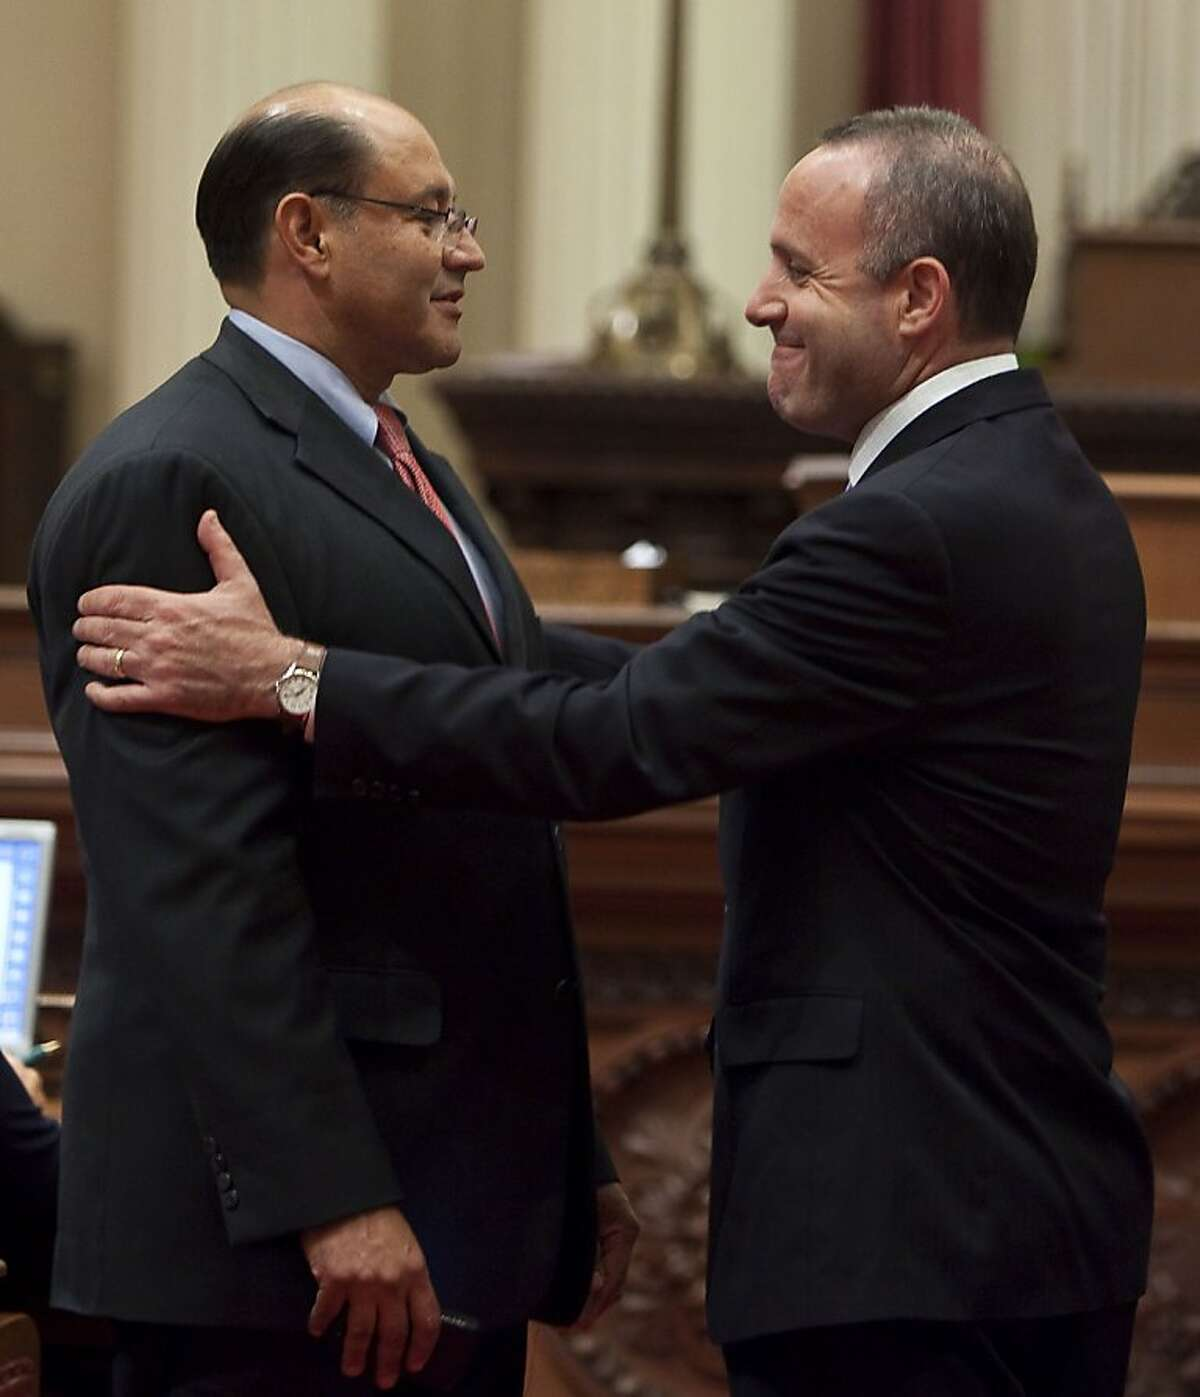 Darrell Steinberg (D-Sacramento), right, president pro tem of the Senate,greets Senator Lou Correa (D- Santa Ana) left, early in the evening before voting began on the 31 bills that make up the budget in Sacramento, July 23, 2009 on the Senate floor.